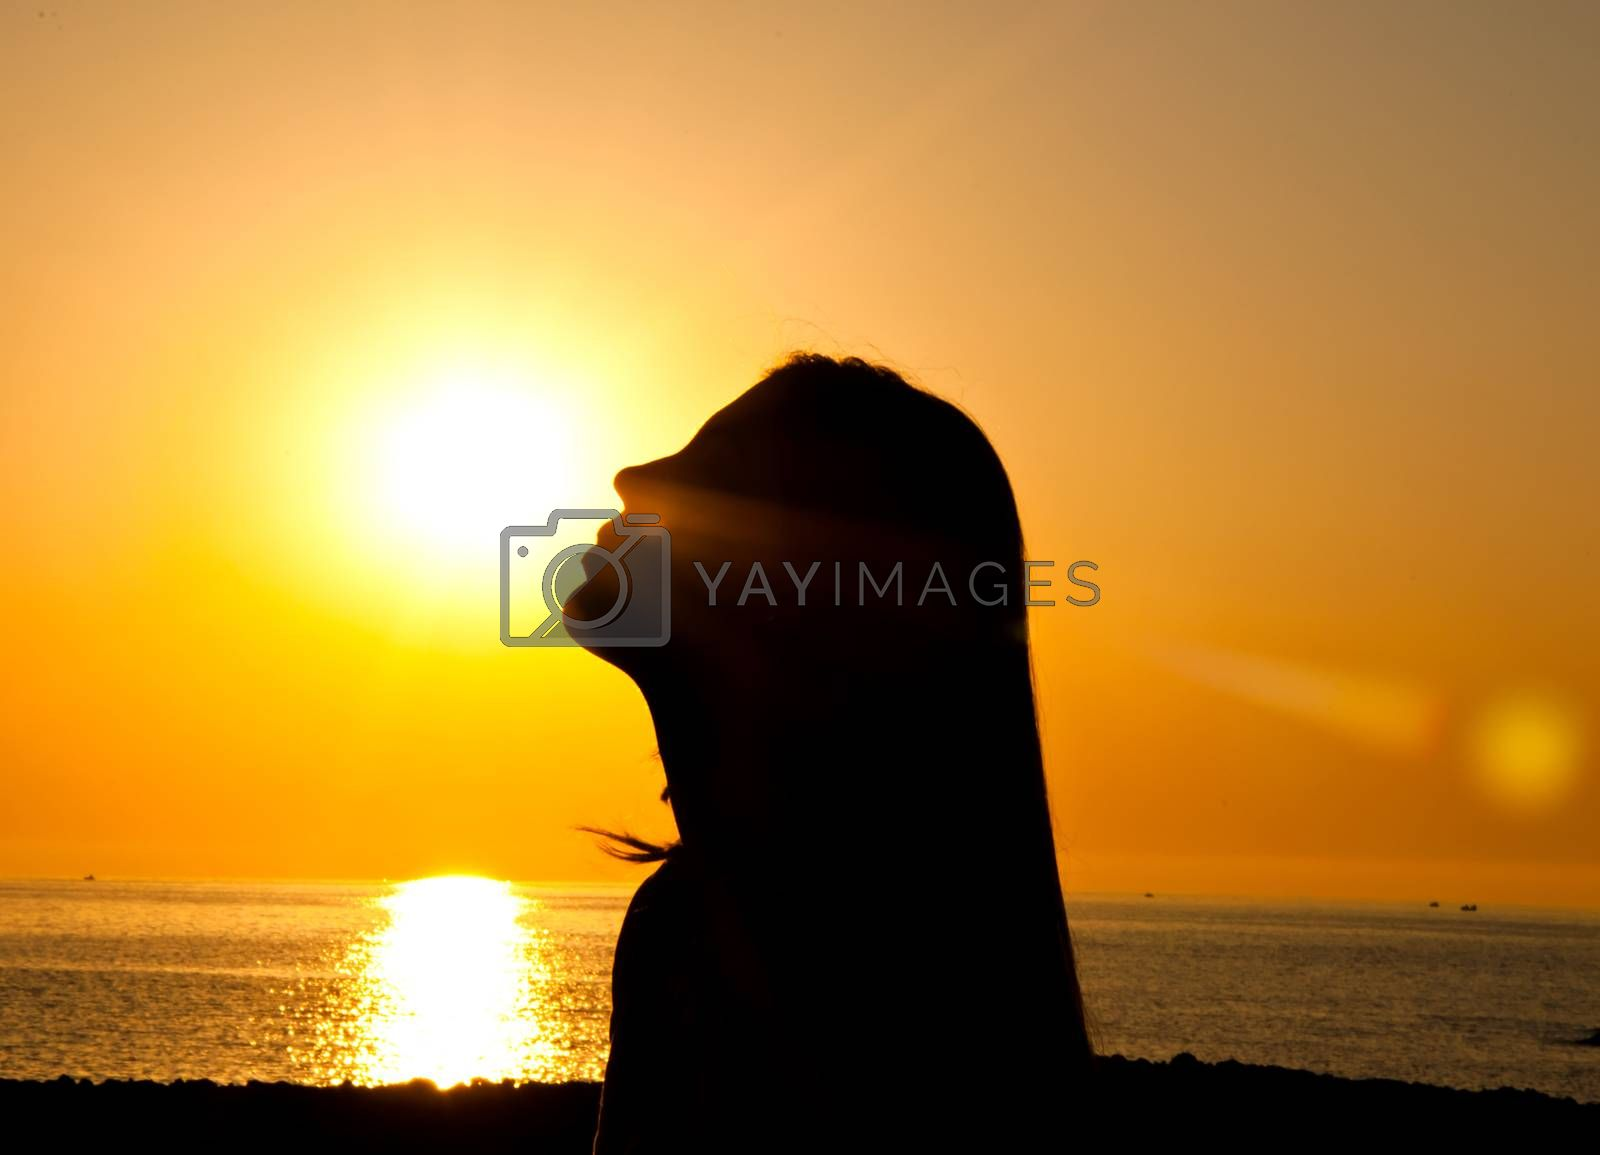 Royalty free image of  Woman silhouette in the sun by lussoadv